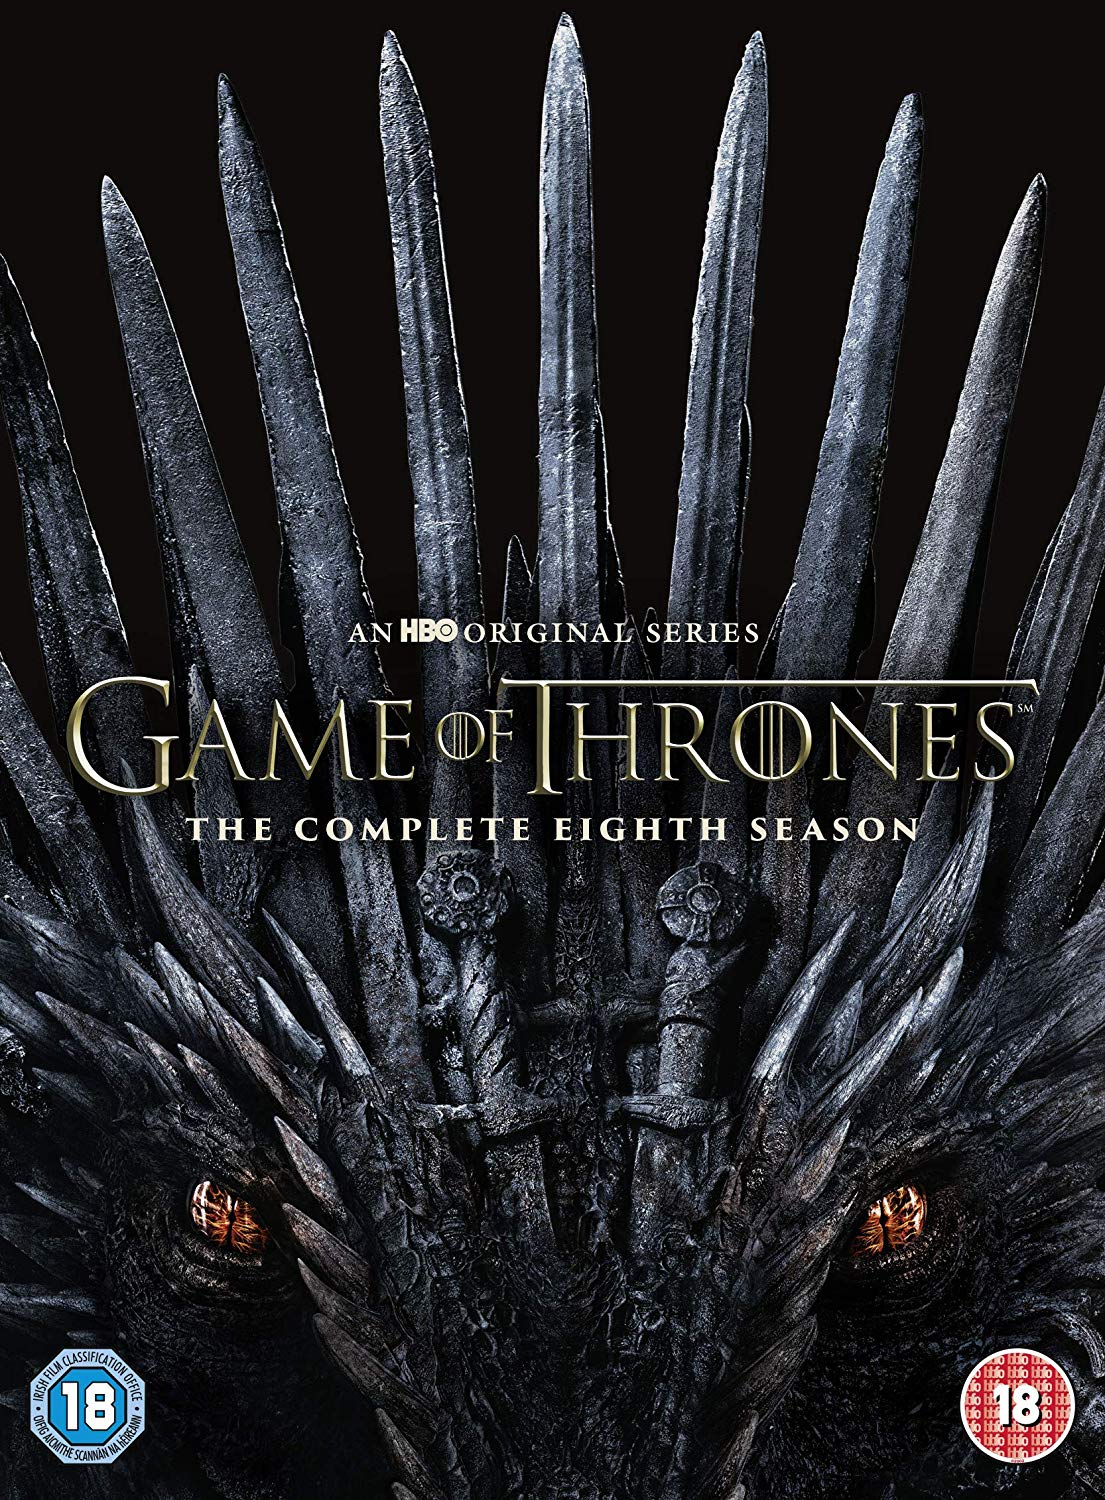 Game of Thrones: The Complete Eighth Season - David Benioff [BLU-RAY]